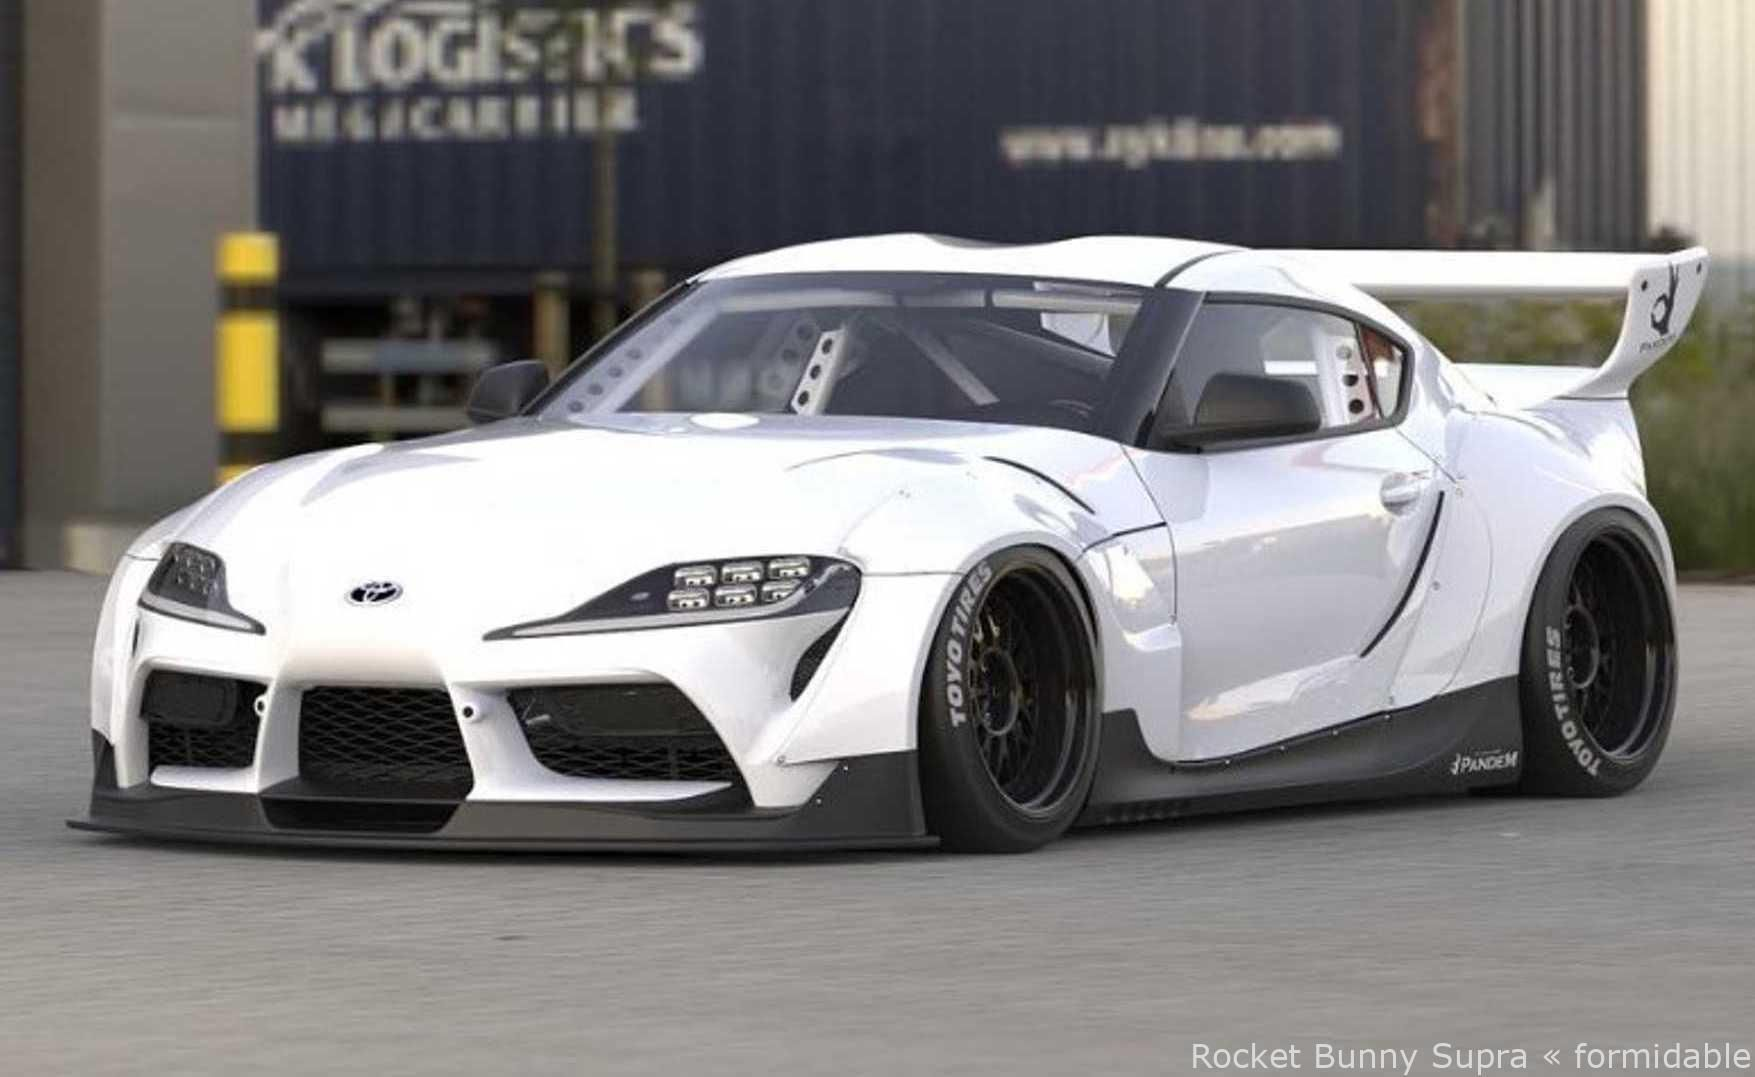 Cars Rocket Bunny Supra Fascinating In 2020 New Toyota Supra Toyota Supra Toyota Supra Mk4